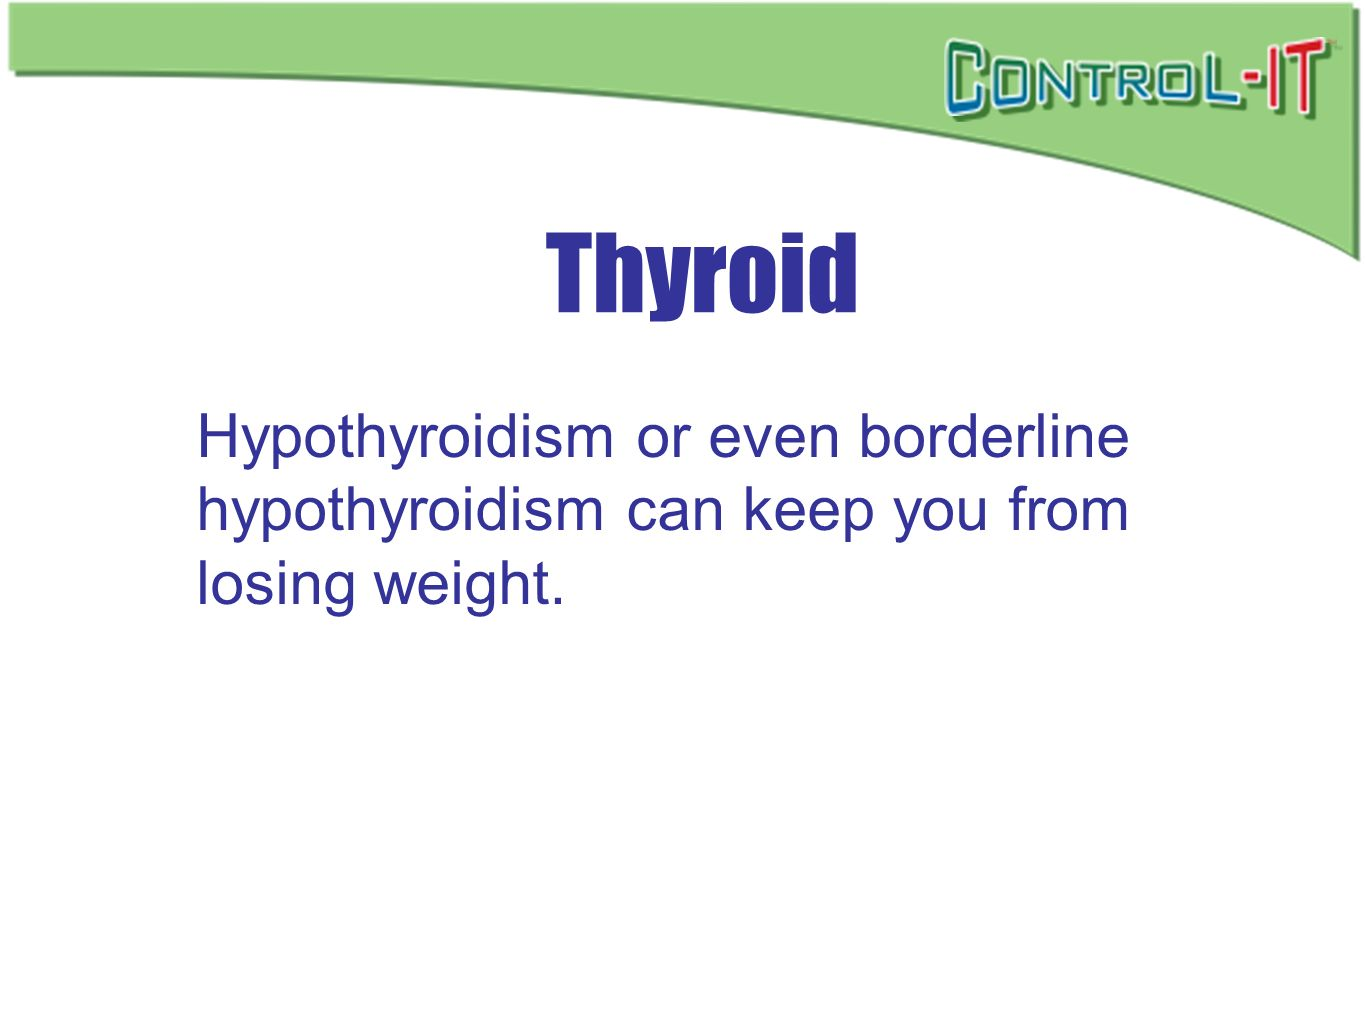 Thyroid Hypothyroidism or even borderline hypothyroidism can keep you from losing weight.